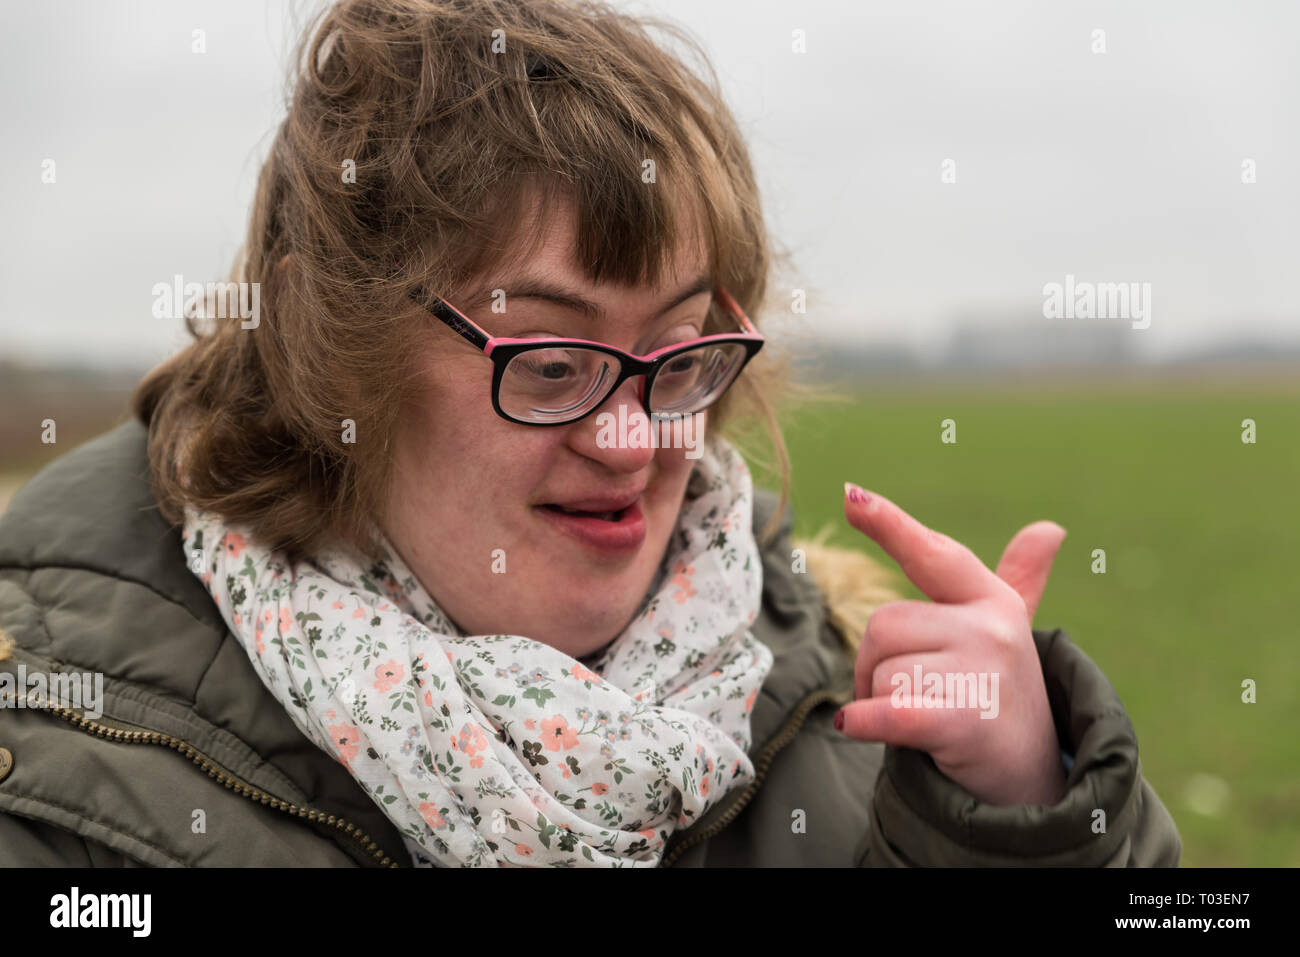 Hakendover, Flanders / Belgium - 03 02 2019: Portrait of a happy white woman with Down Syndrome and myopia - Stock Image